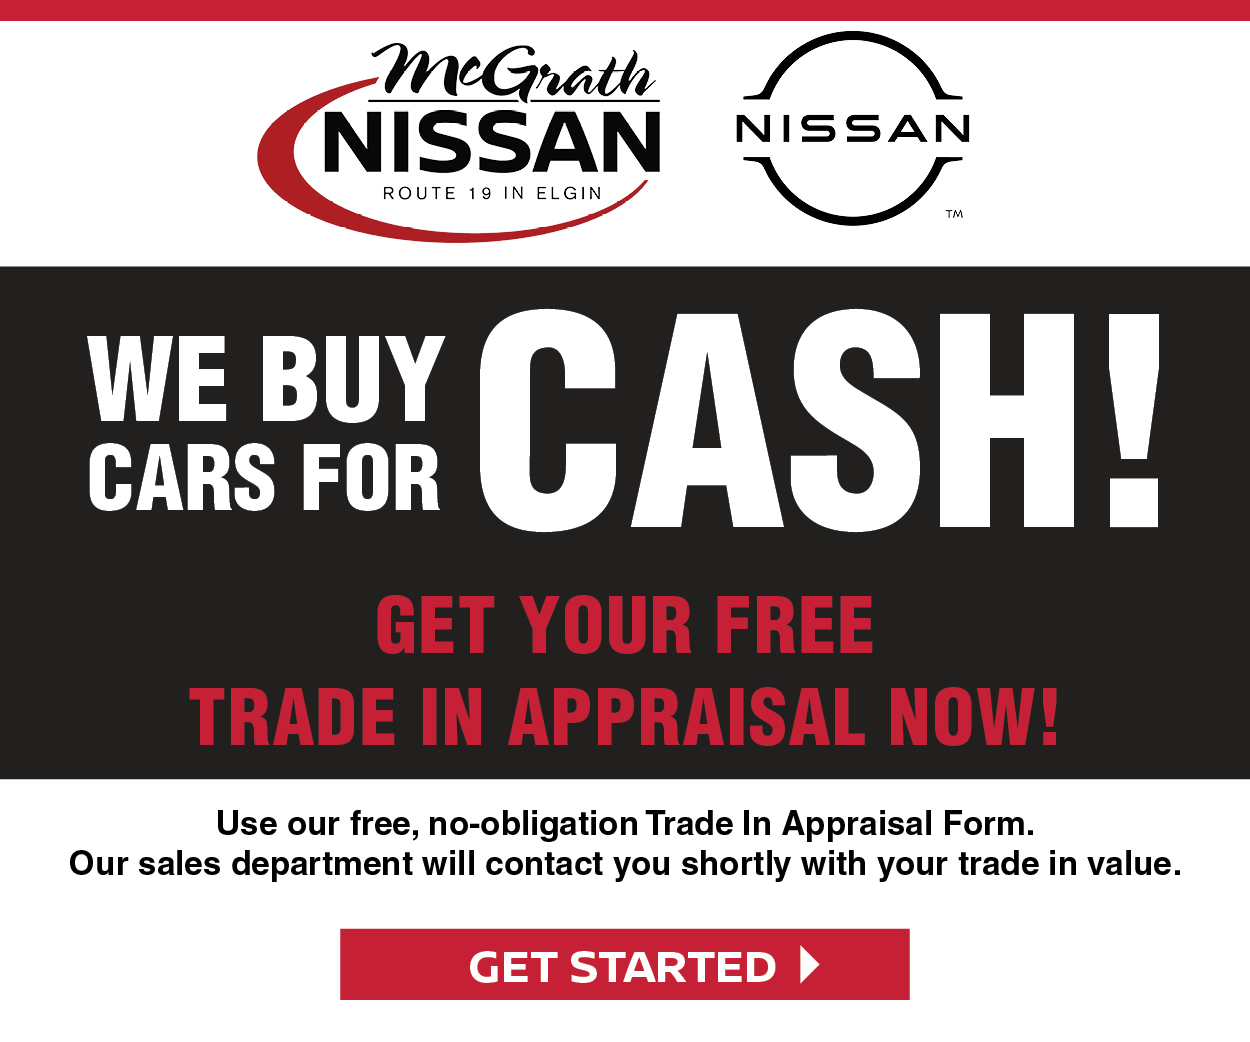 We Buy Cars for Cash! Get Your Free Trade in Appraisal Now